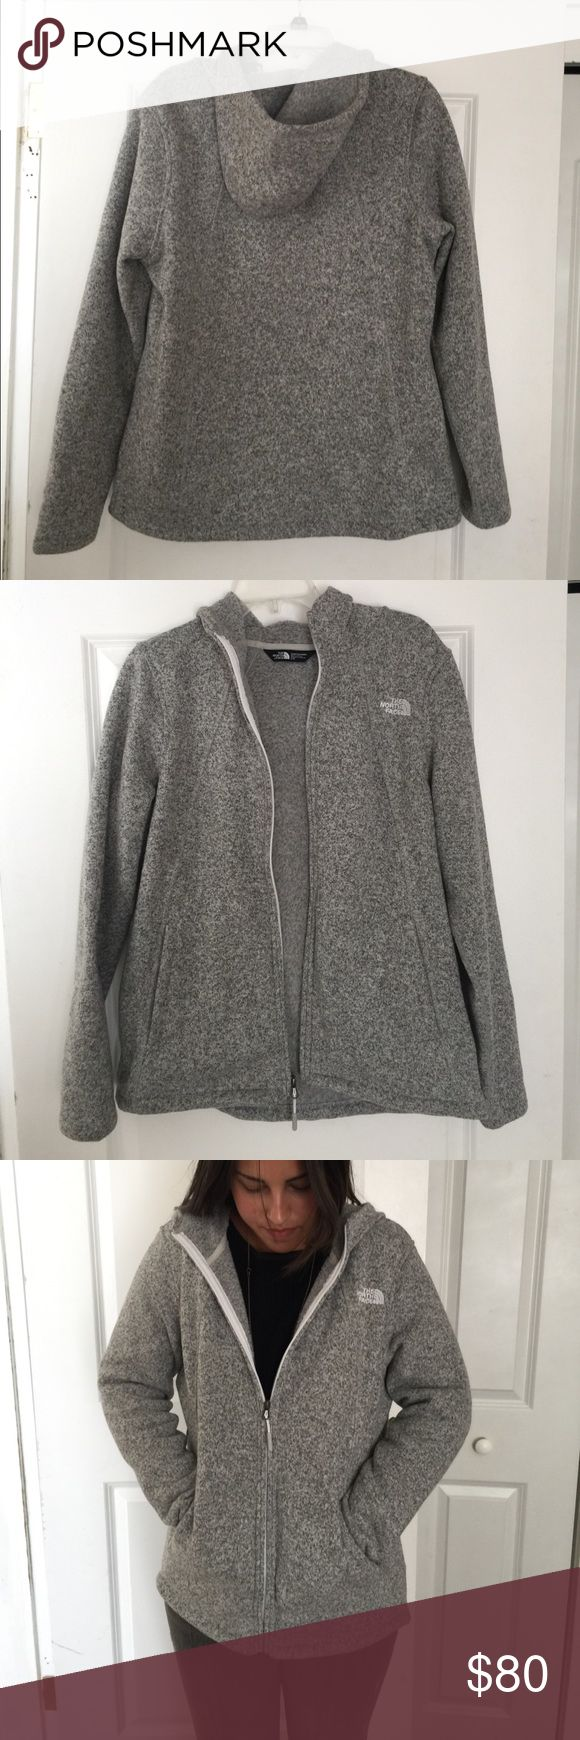 The North Face winter jacket NWOT Very warm, never been worn jacket. Great for fall and winter. North Face Jackets & Coats